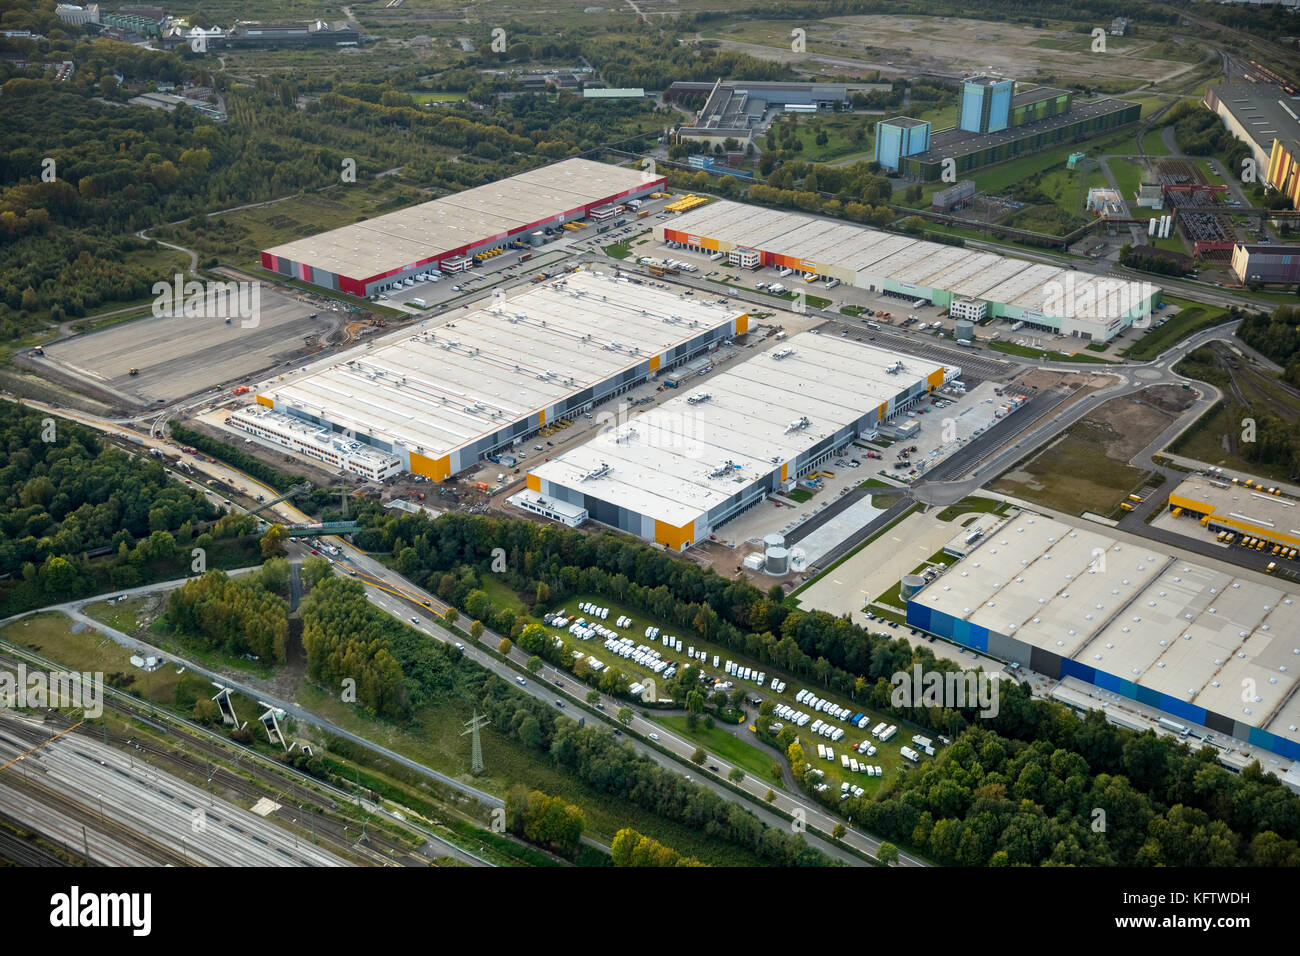 Dortmund Shopping Center Amazon Logistics Center Quotdtm2 Quot In Dortmund Is Located On